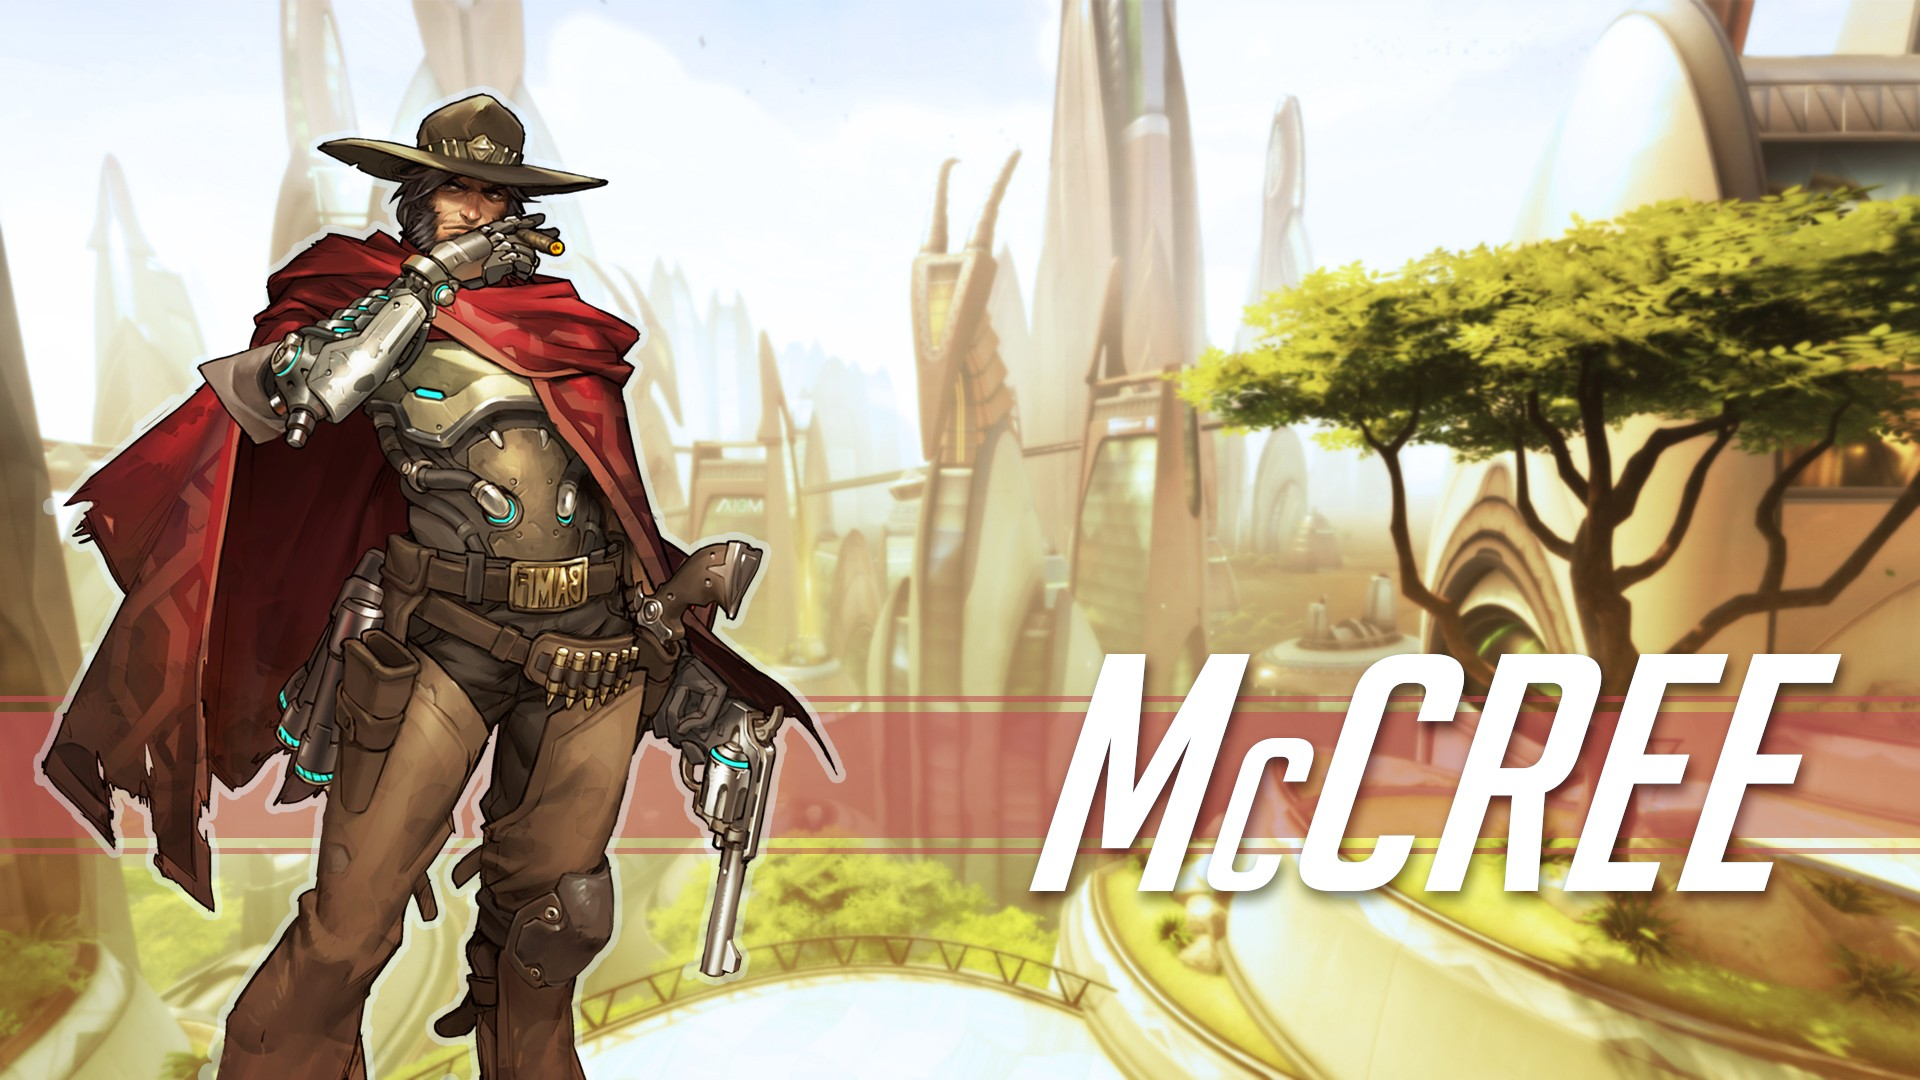 1920x1080 Hd Wallpaper Overwatch Girls Livewirehd Author Mccree Jesse Mccree Blizzard